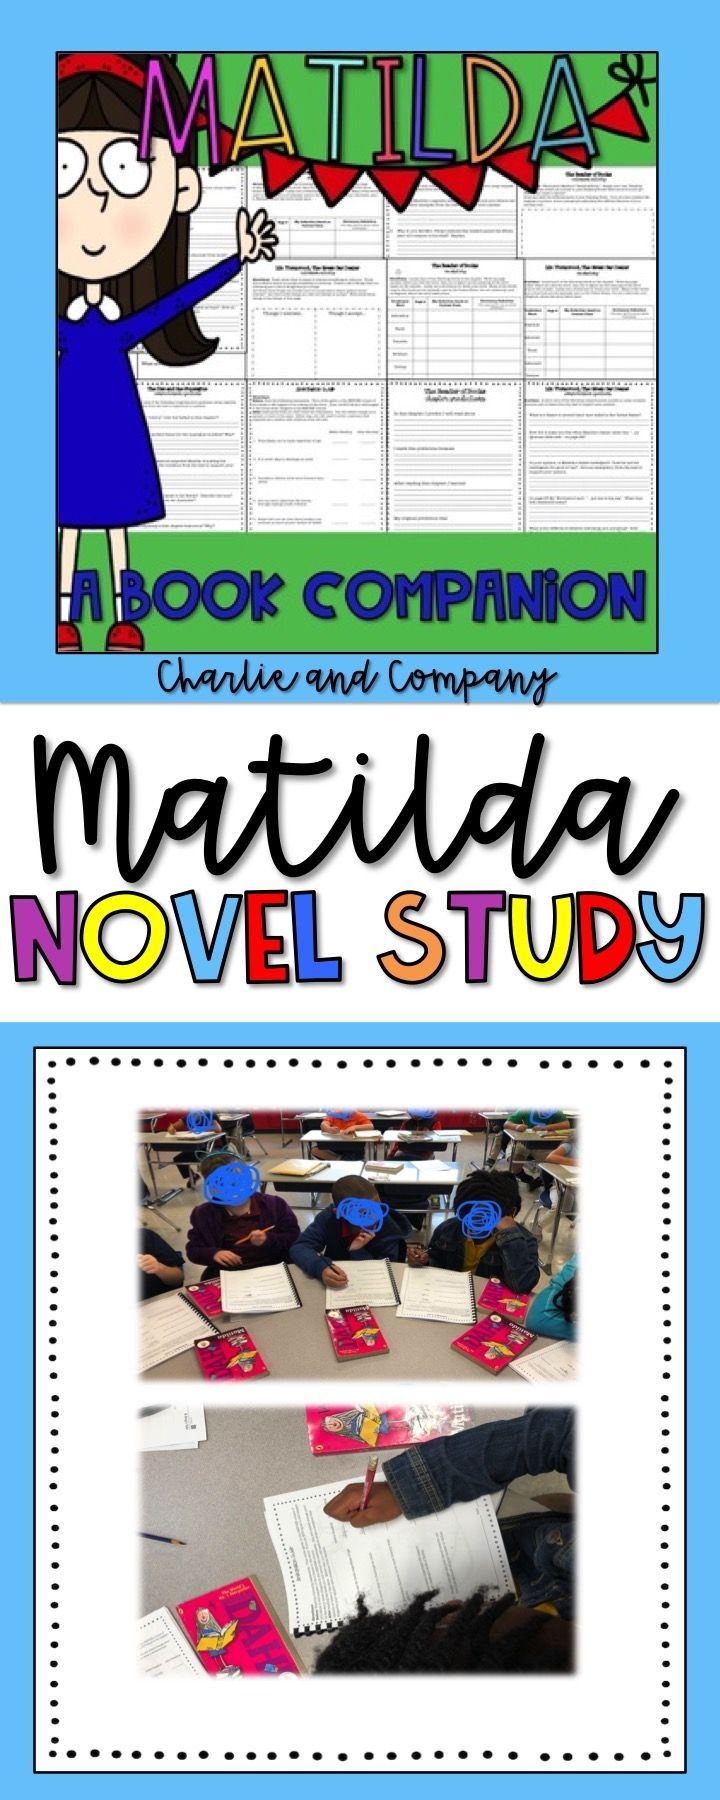 Matilda Novel Study!  This copy and go book companion will push your students to really think about what they are reading! It includes higher level comprehension questions that require students to give evidence from the text to support their responses. Vocabulary words, comprehension questions, and extension activities are included for each chapter. A list of the extension activities are provided below